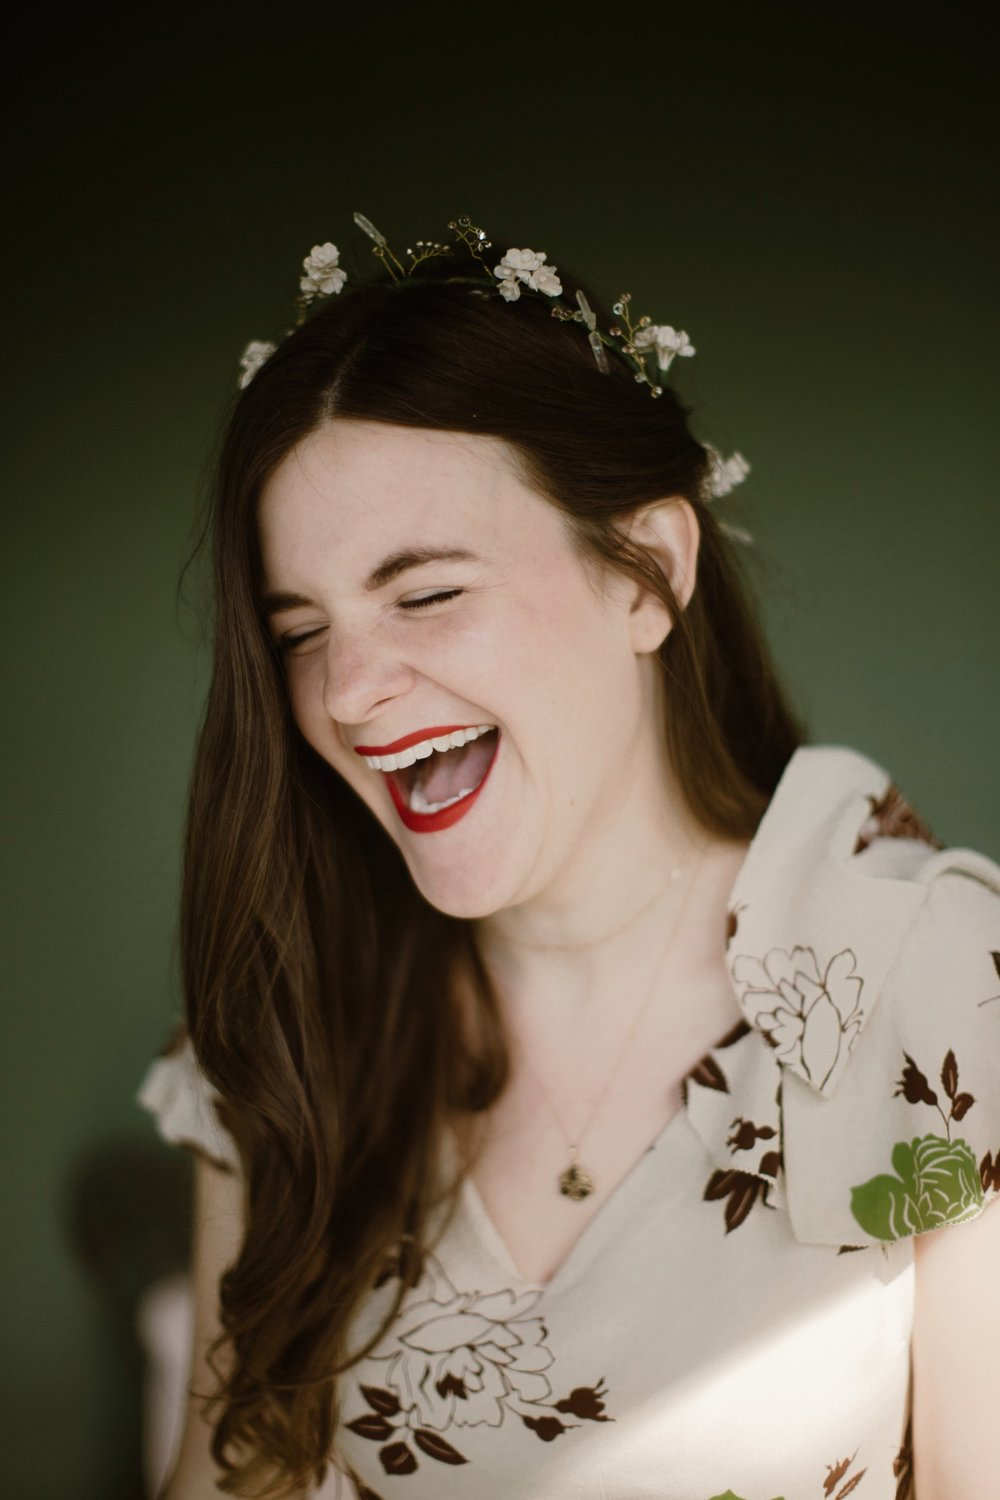 A woman in a flower crown and floral print dress with bold red lipstick laughs with eyes closed and mouth open in a Sarah Gormley photo